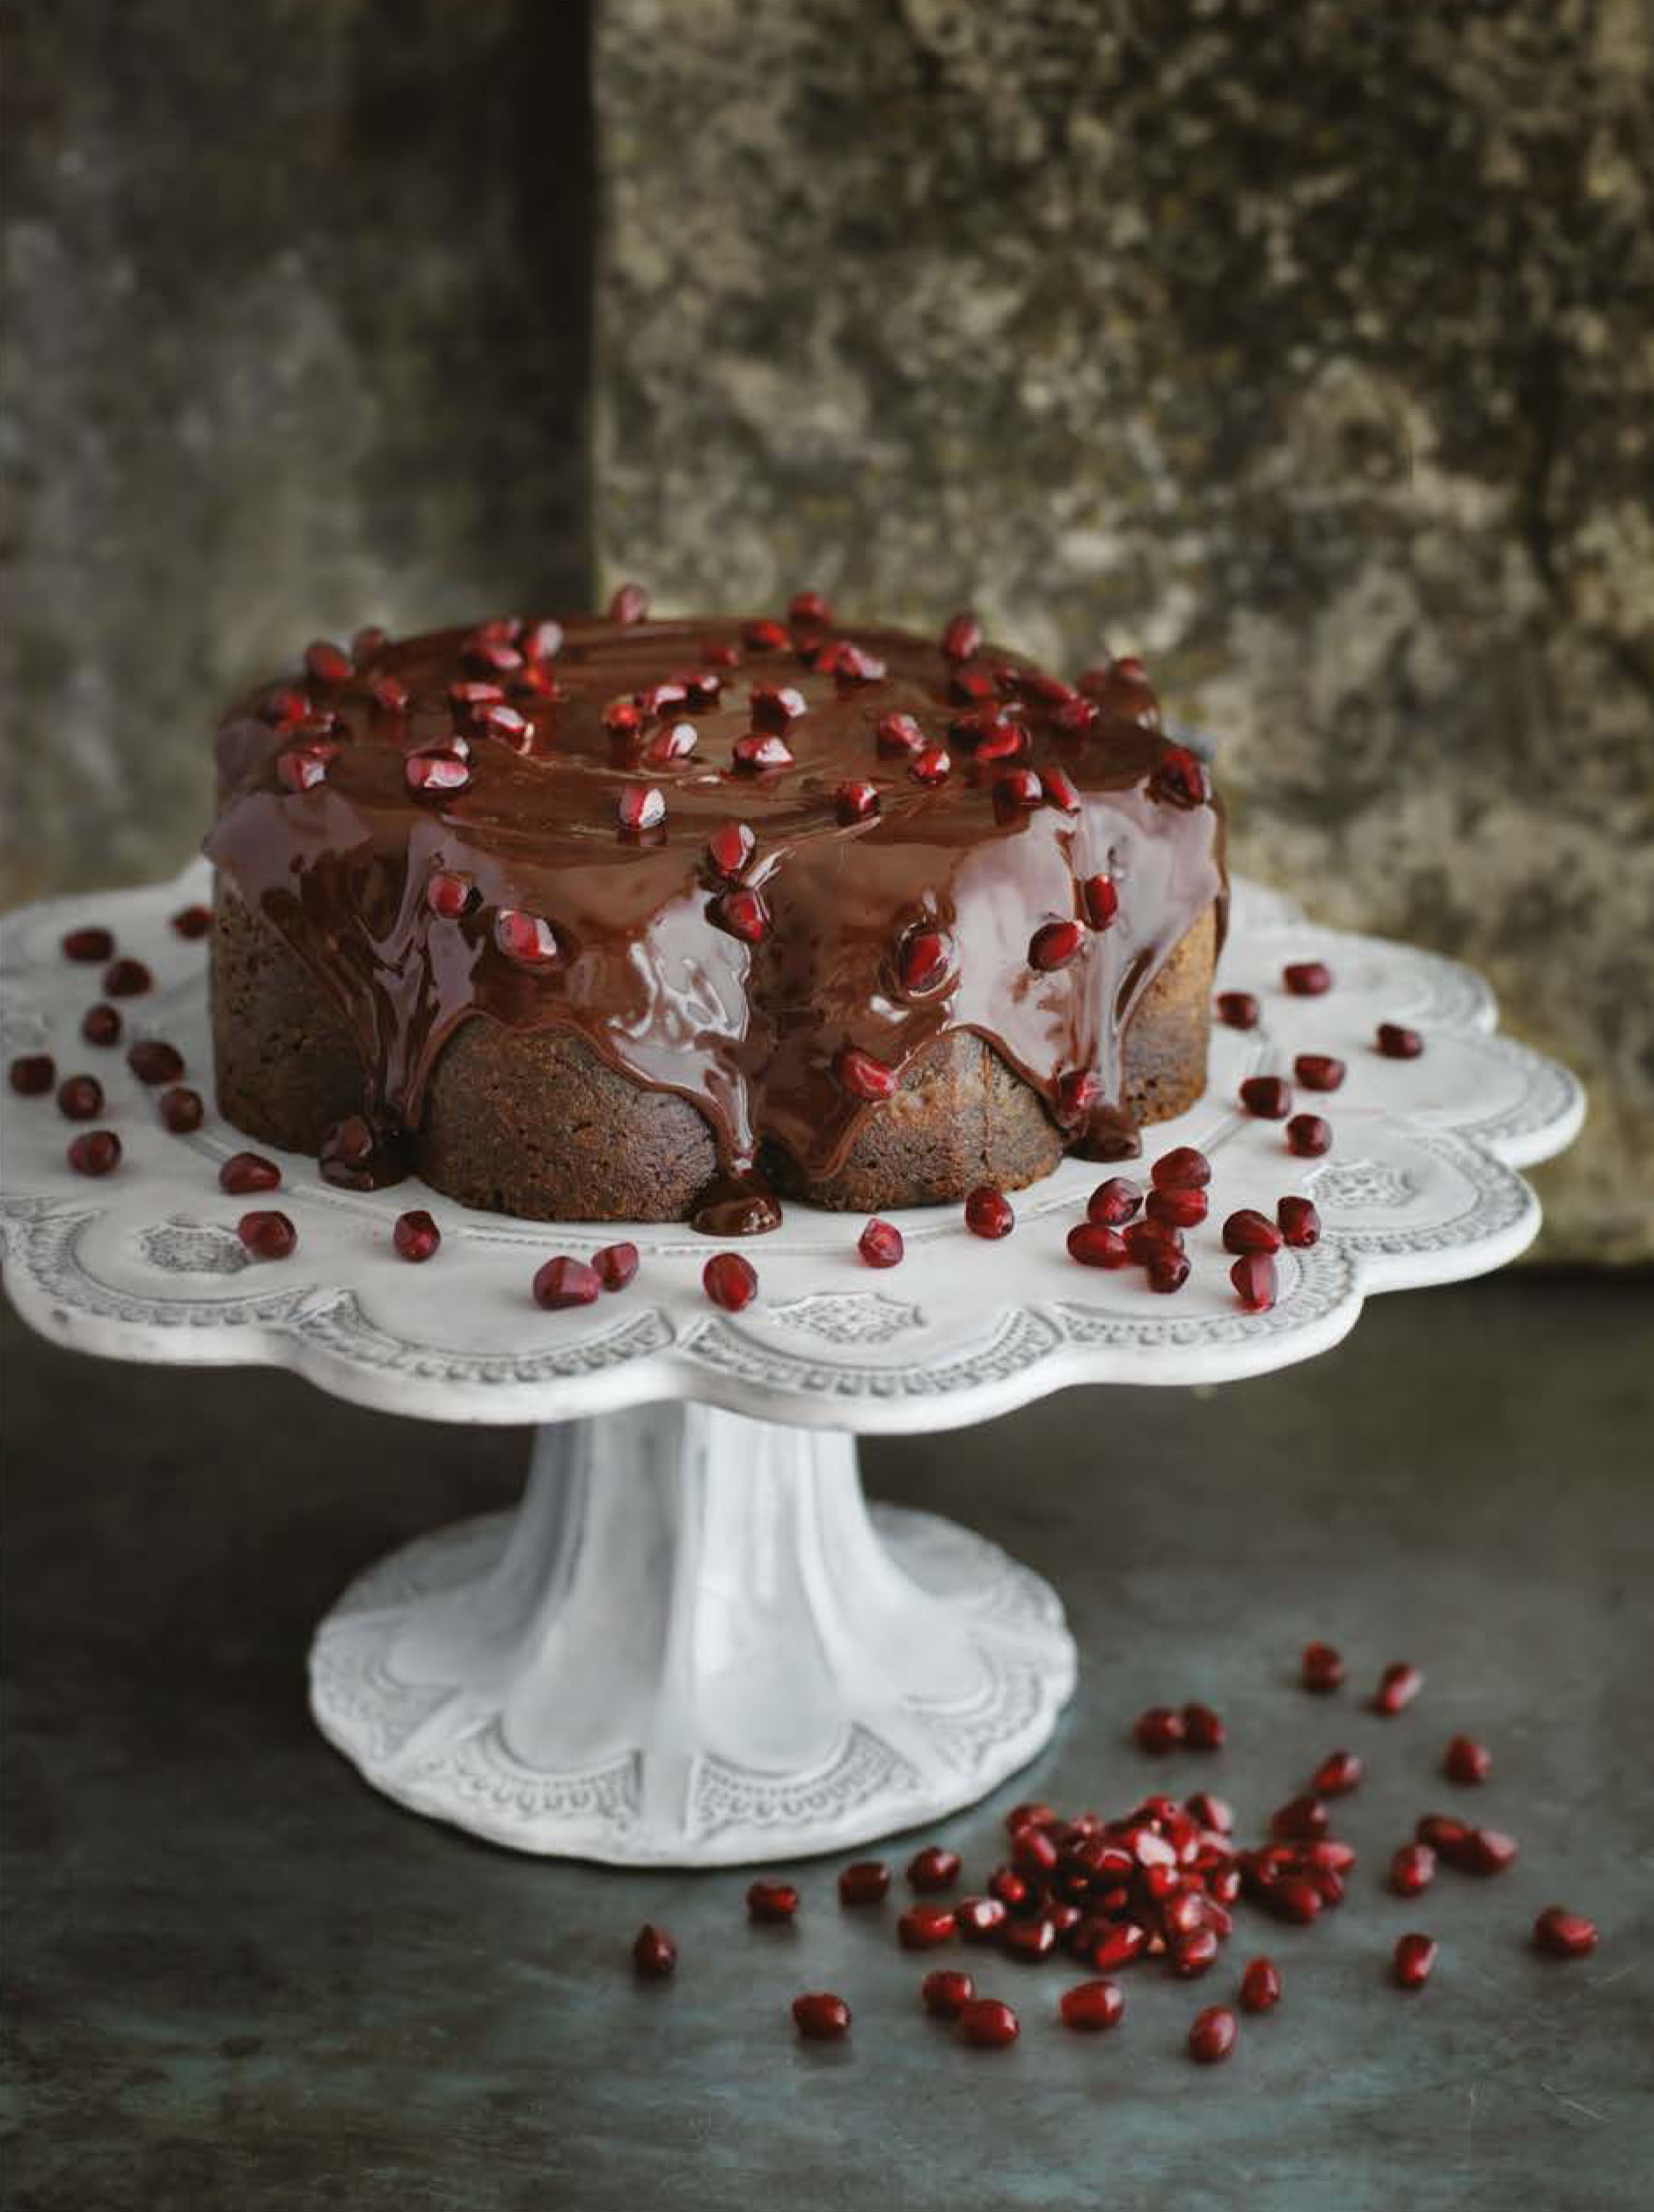 Chocolate pomegranate cake